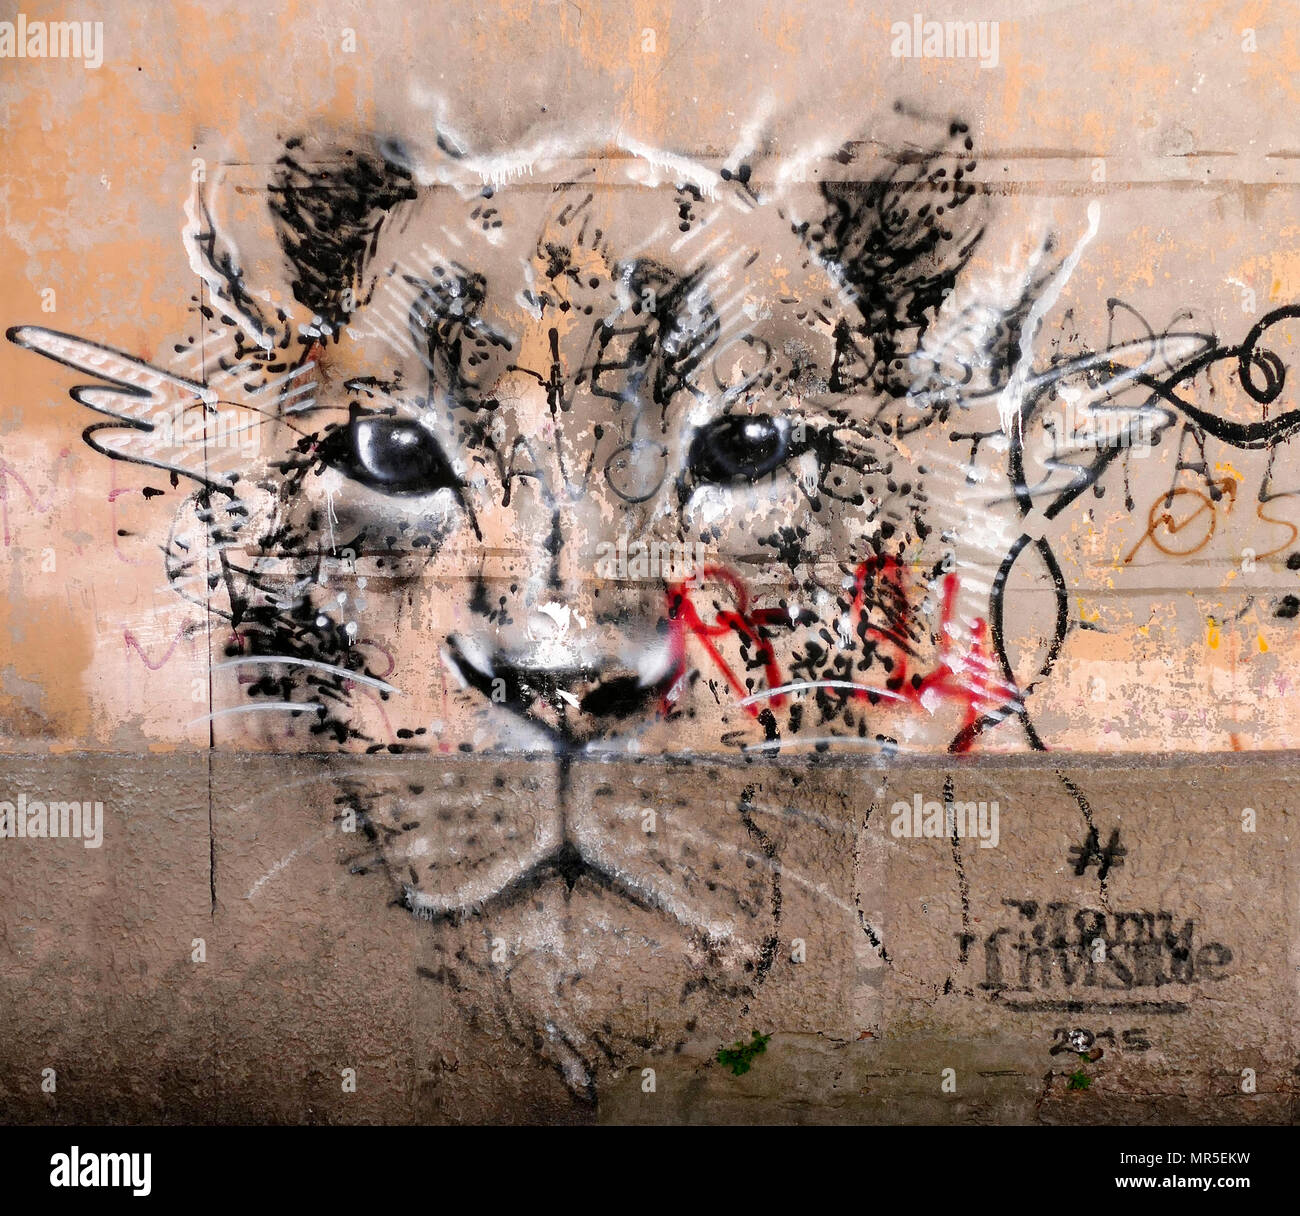 Graffiti of a lioness in the Arsenale district of Venice, Italy - Stock Image